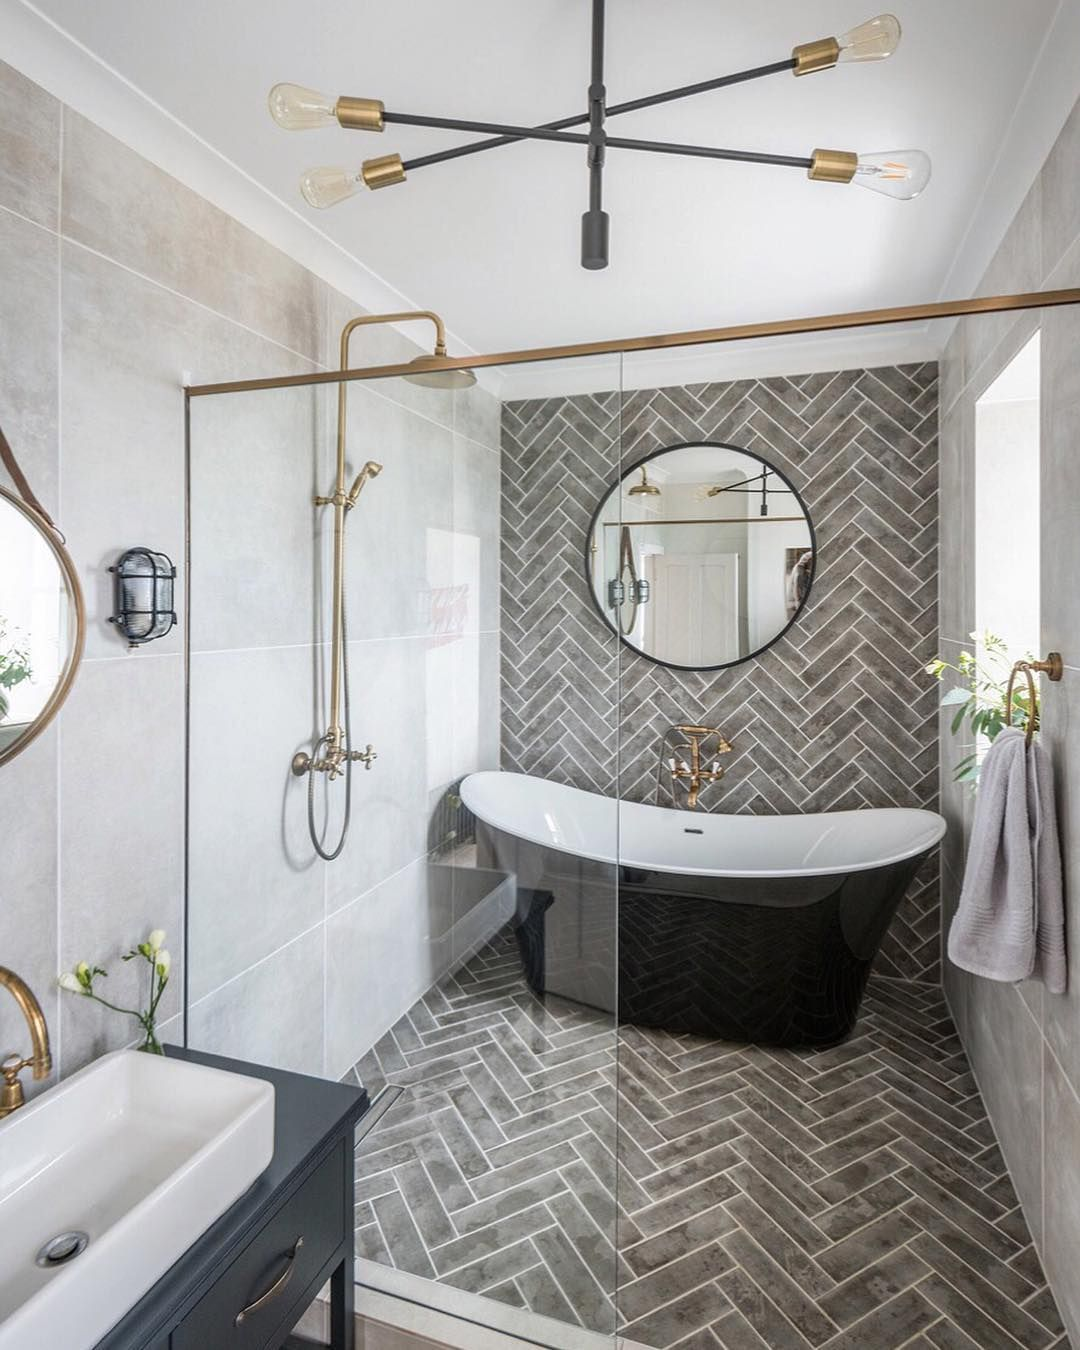 Room Design Free: Extravagant Master Bathroom